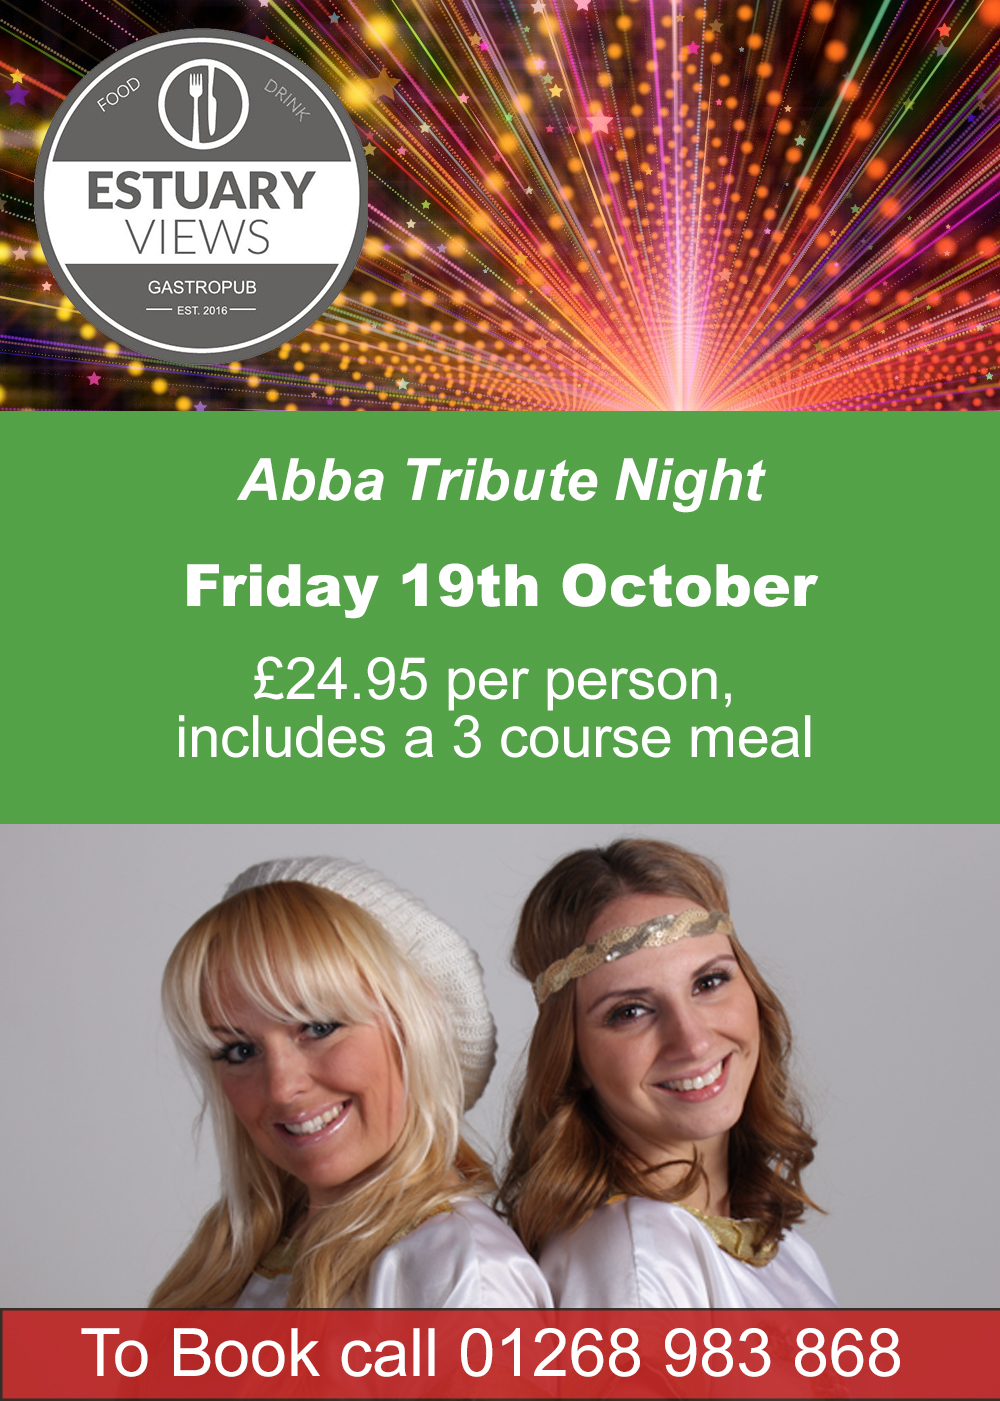 Abba Tribute Night